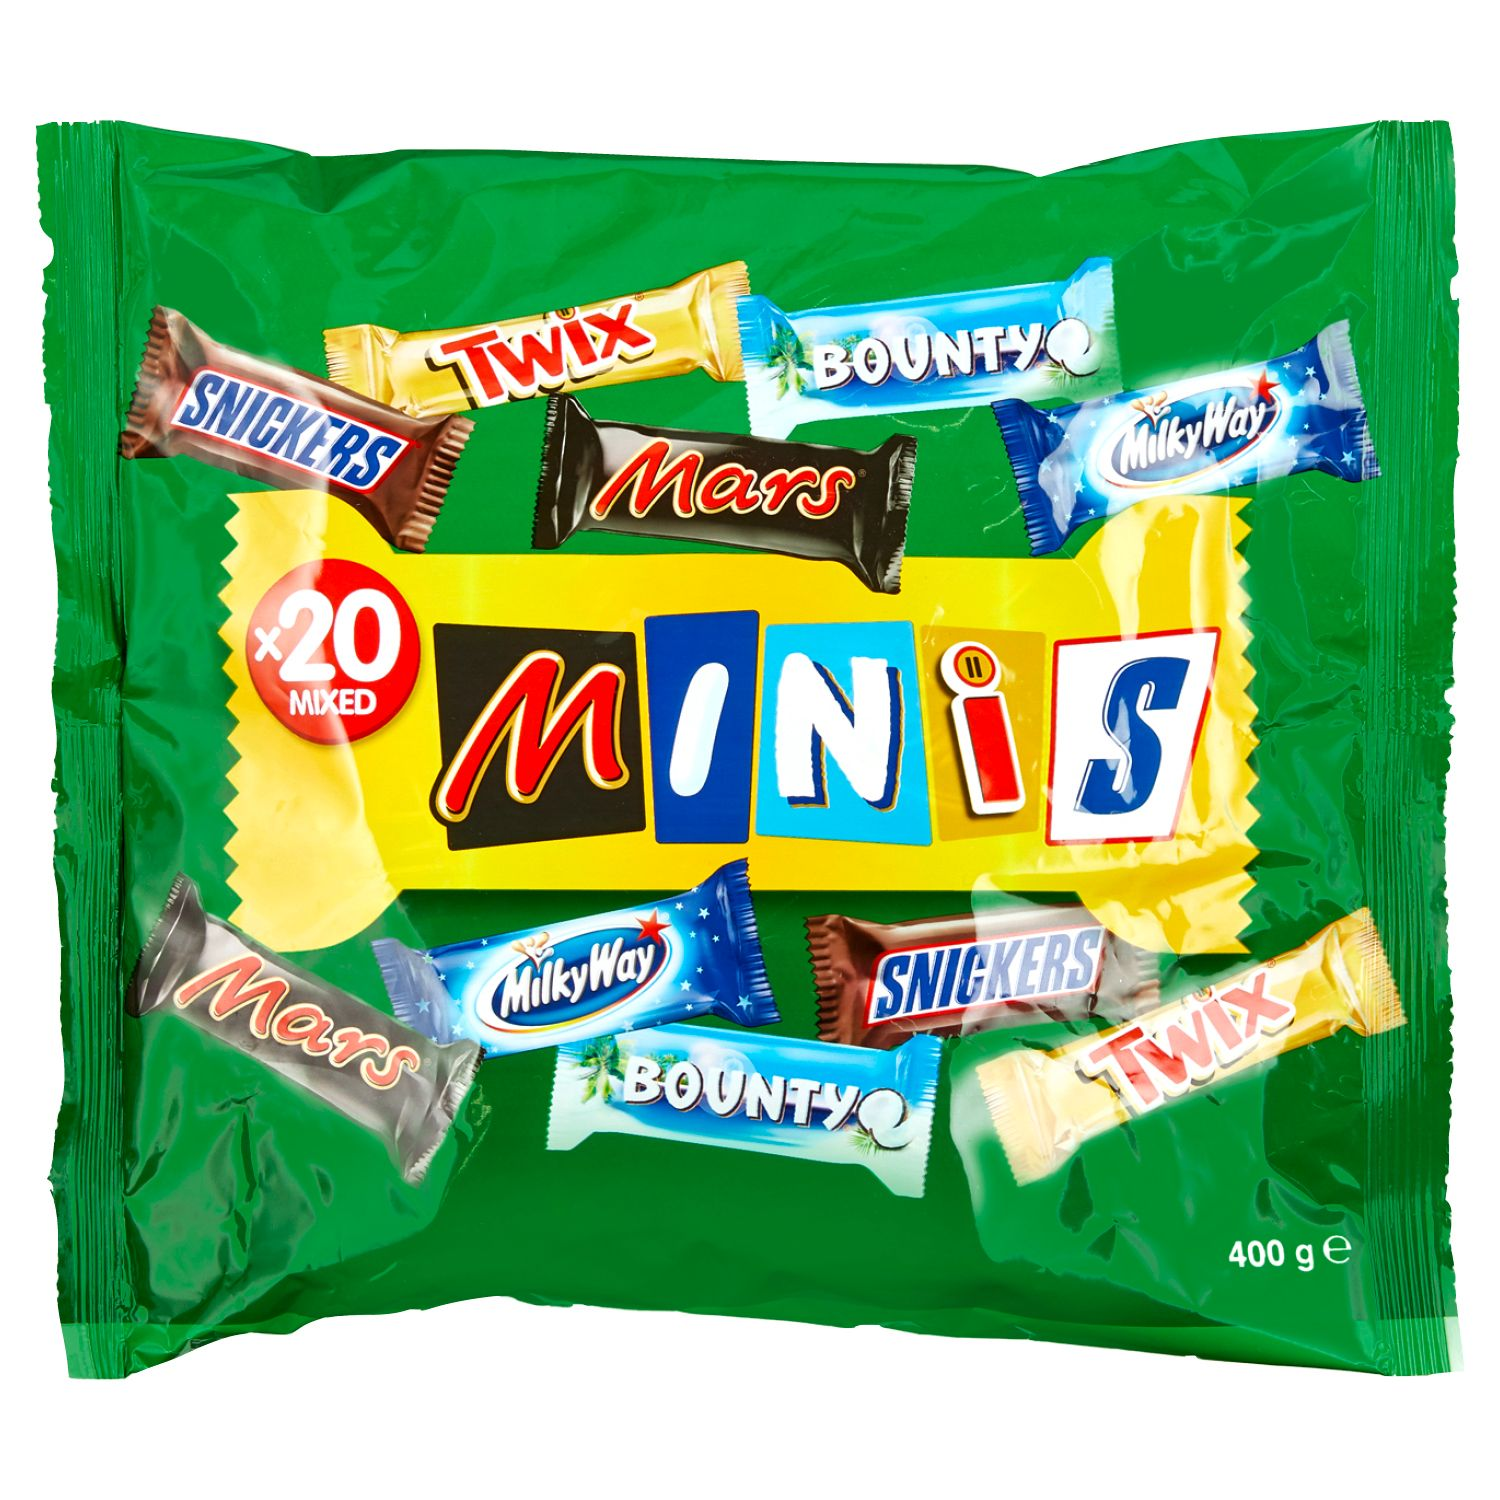 Mars/ Twix/ Bunty/ Milky Way/ Snickers Mixed Minis 400g*